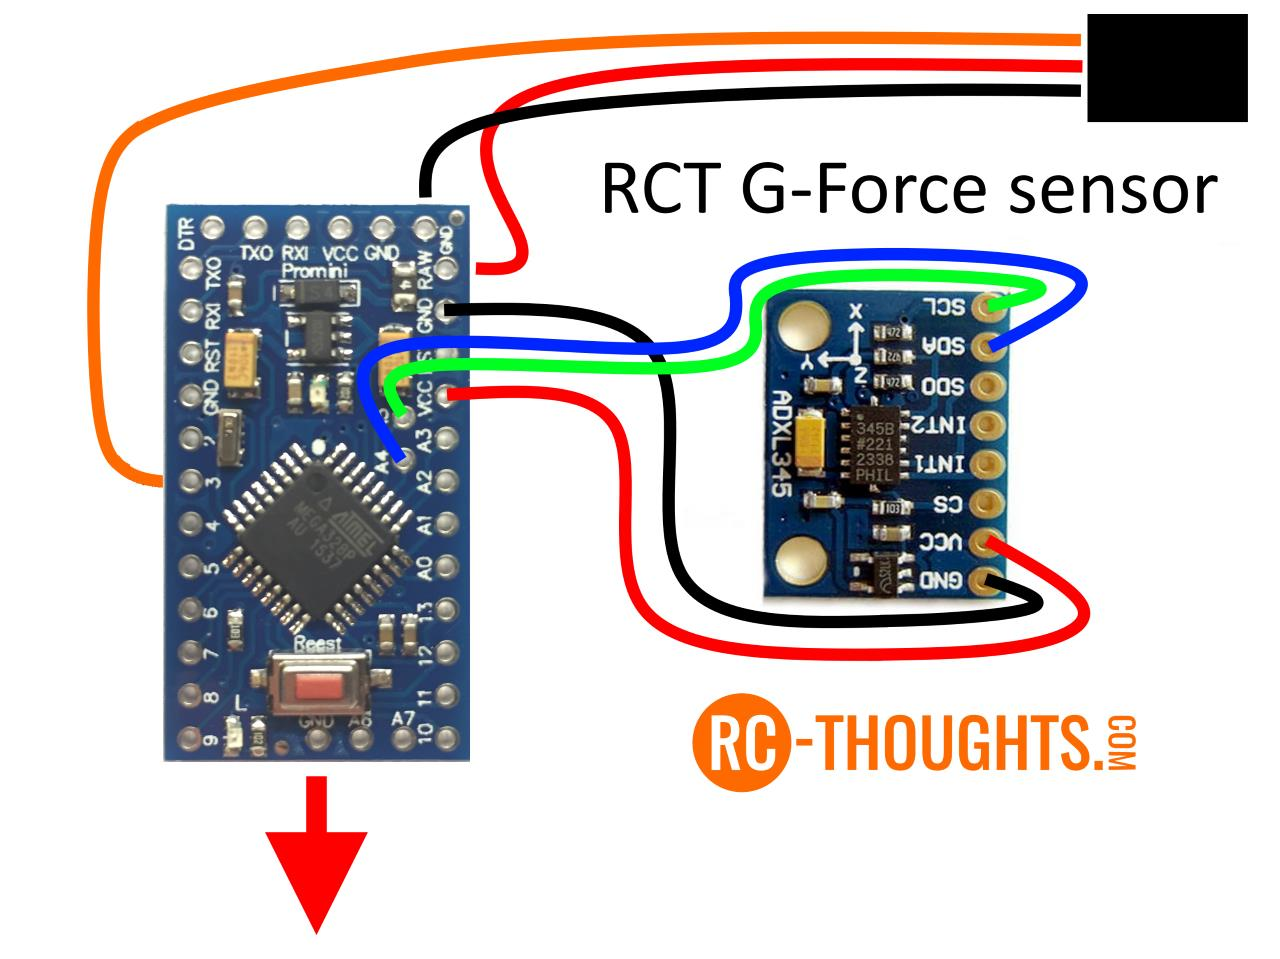 Jeti G Force Sensor Ogo Wiring Diagram Important Note Is Drawn To Schematic As It Supposed Be Installed In Your Model That Means Installing Adxl345 On Top Of Arduino Pro Mini Needs